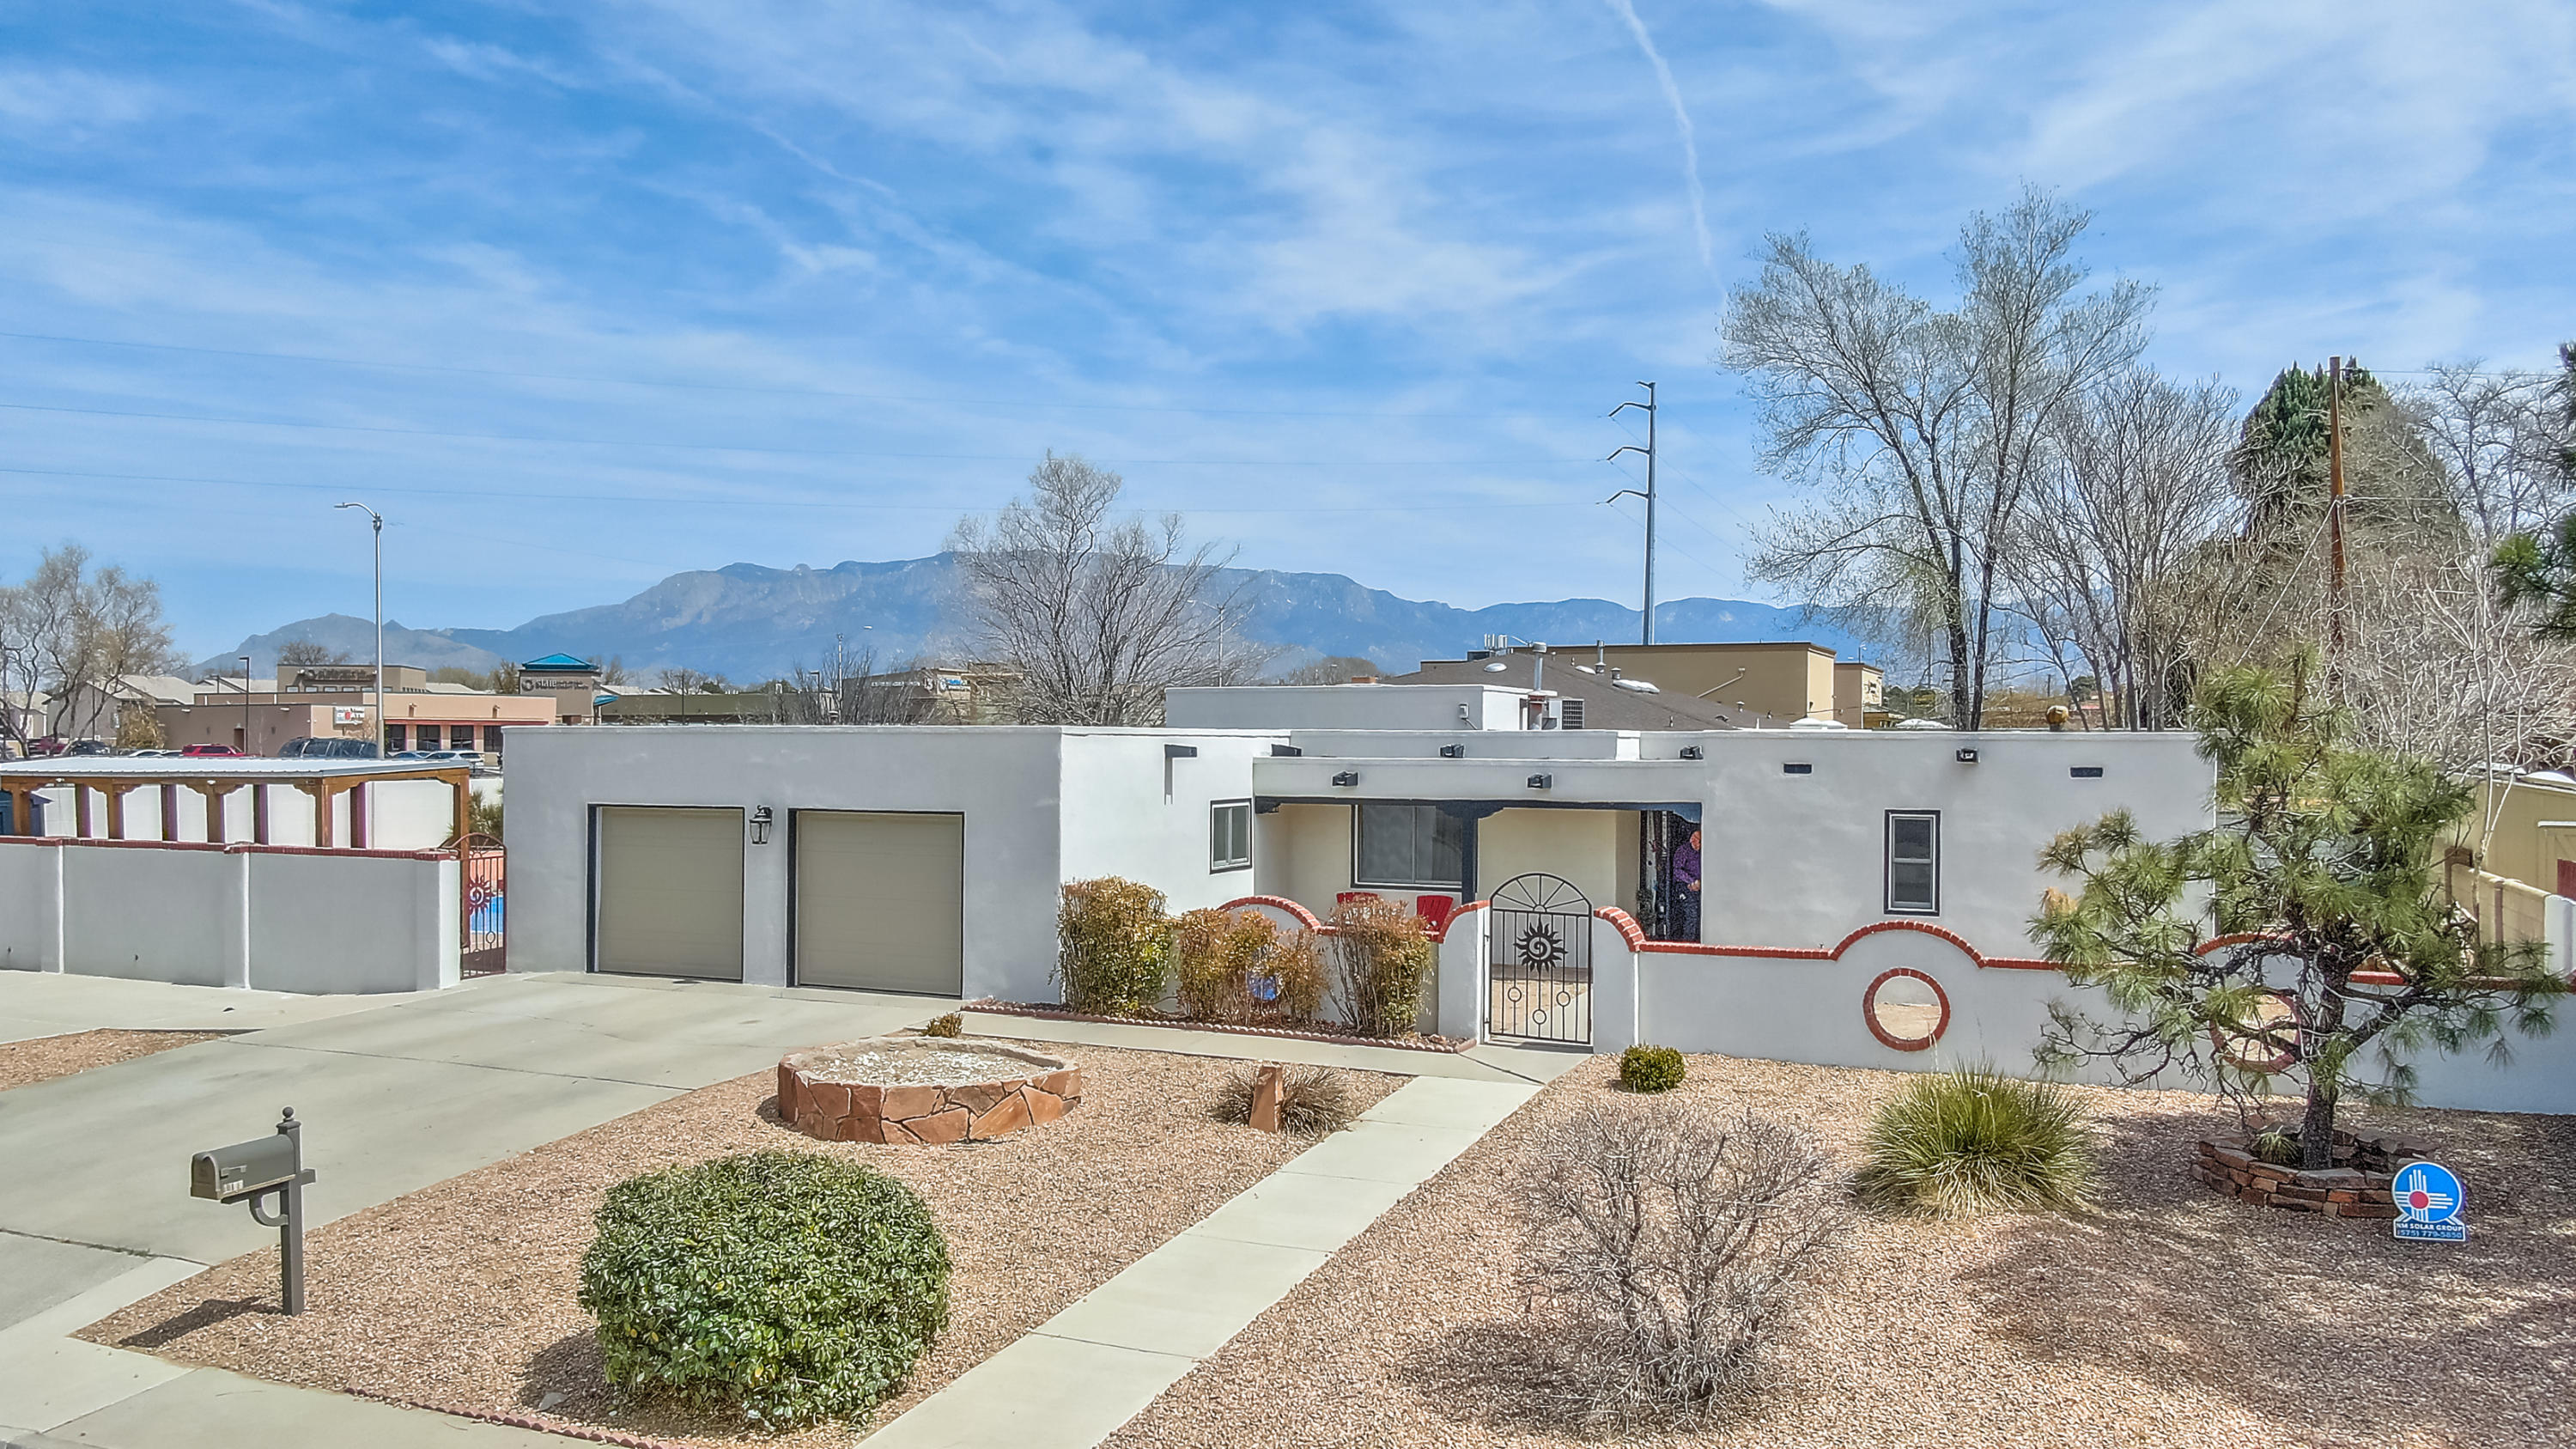 Come see this beautiful Territorial Home centrally located in the city of Albuquerque! This home features many updates including new Pella windows and Stucco. The home is on a 3/4 acre corner lot, with a sparkling swimming pool and outdoor fire pit. The home has refrigerated air with 4 large bedrooms, 3 bathrooms and a 2 car garage! Located near Top Golf. Come see this one before its gone!